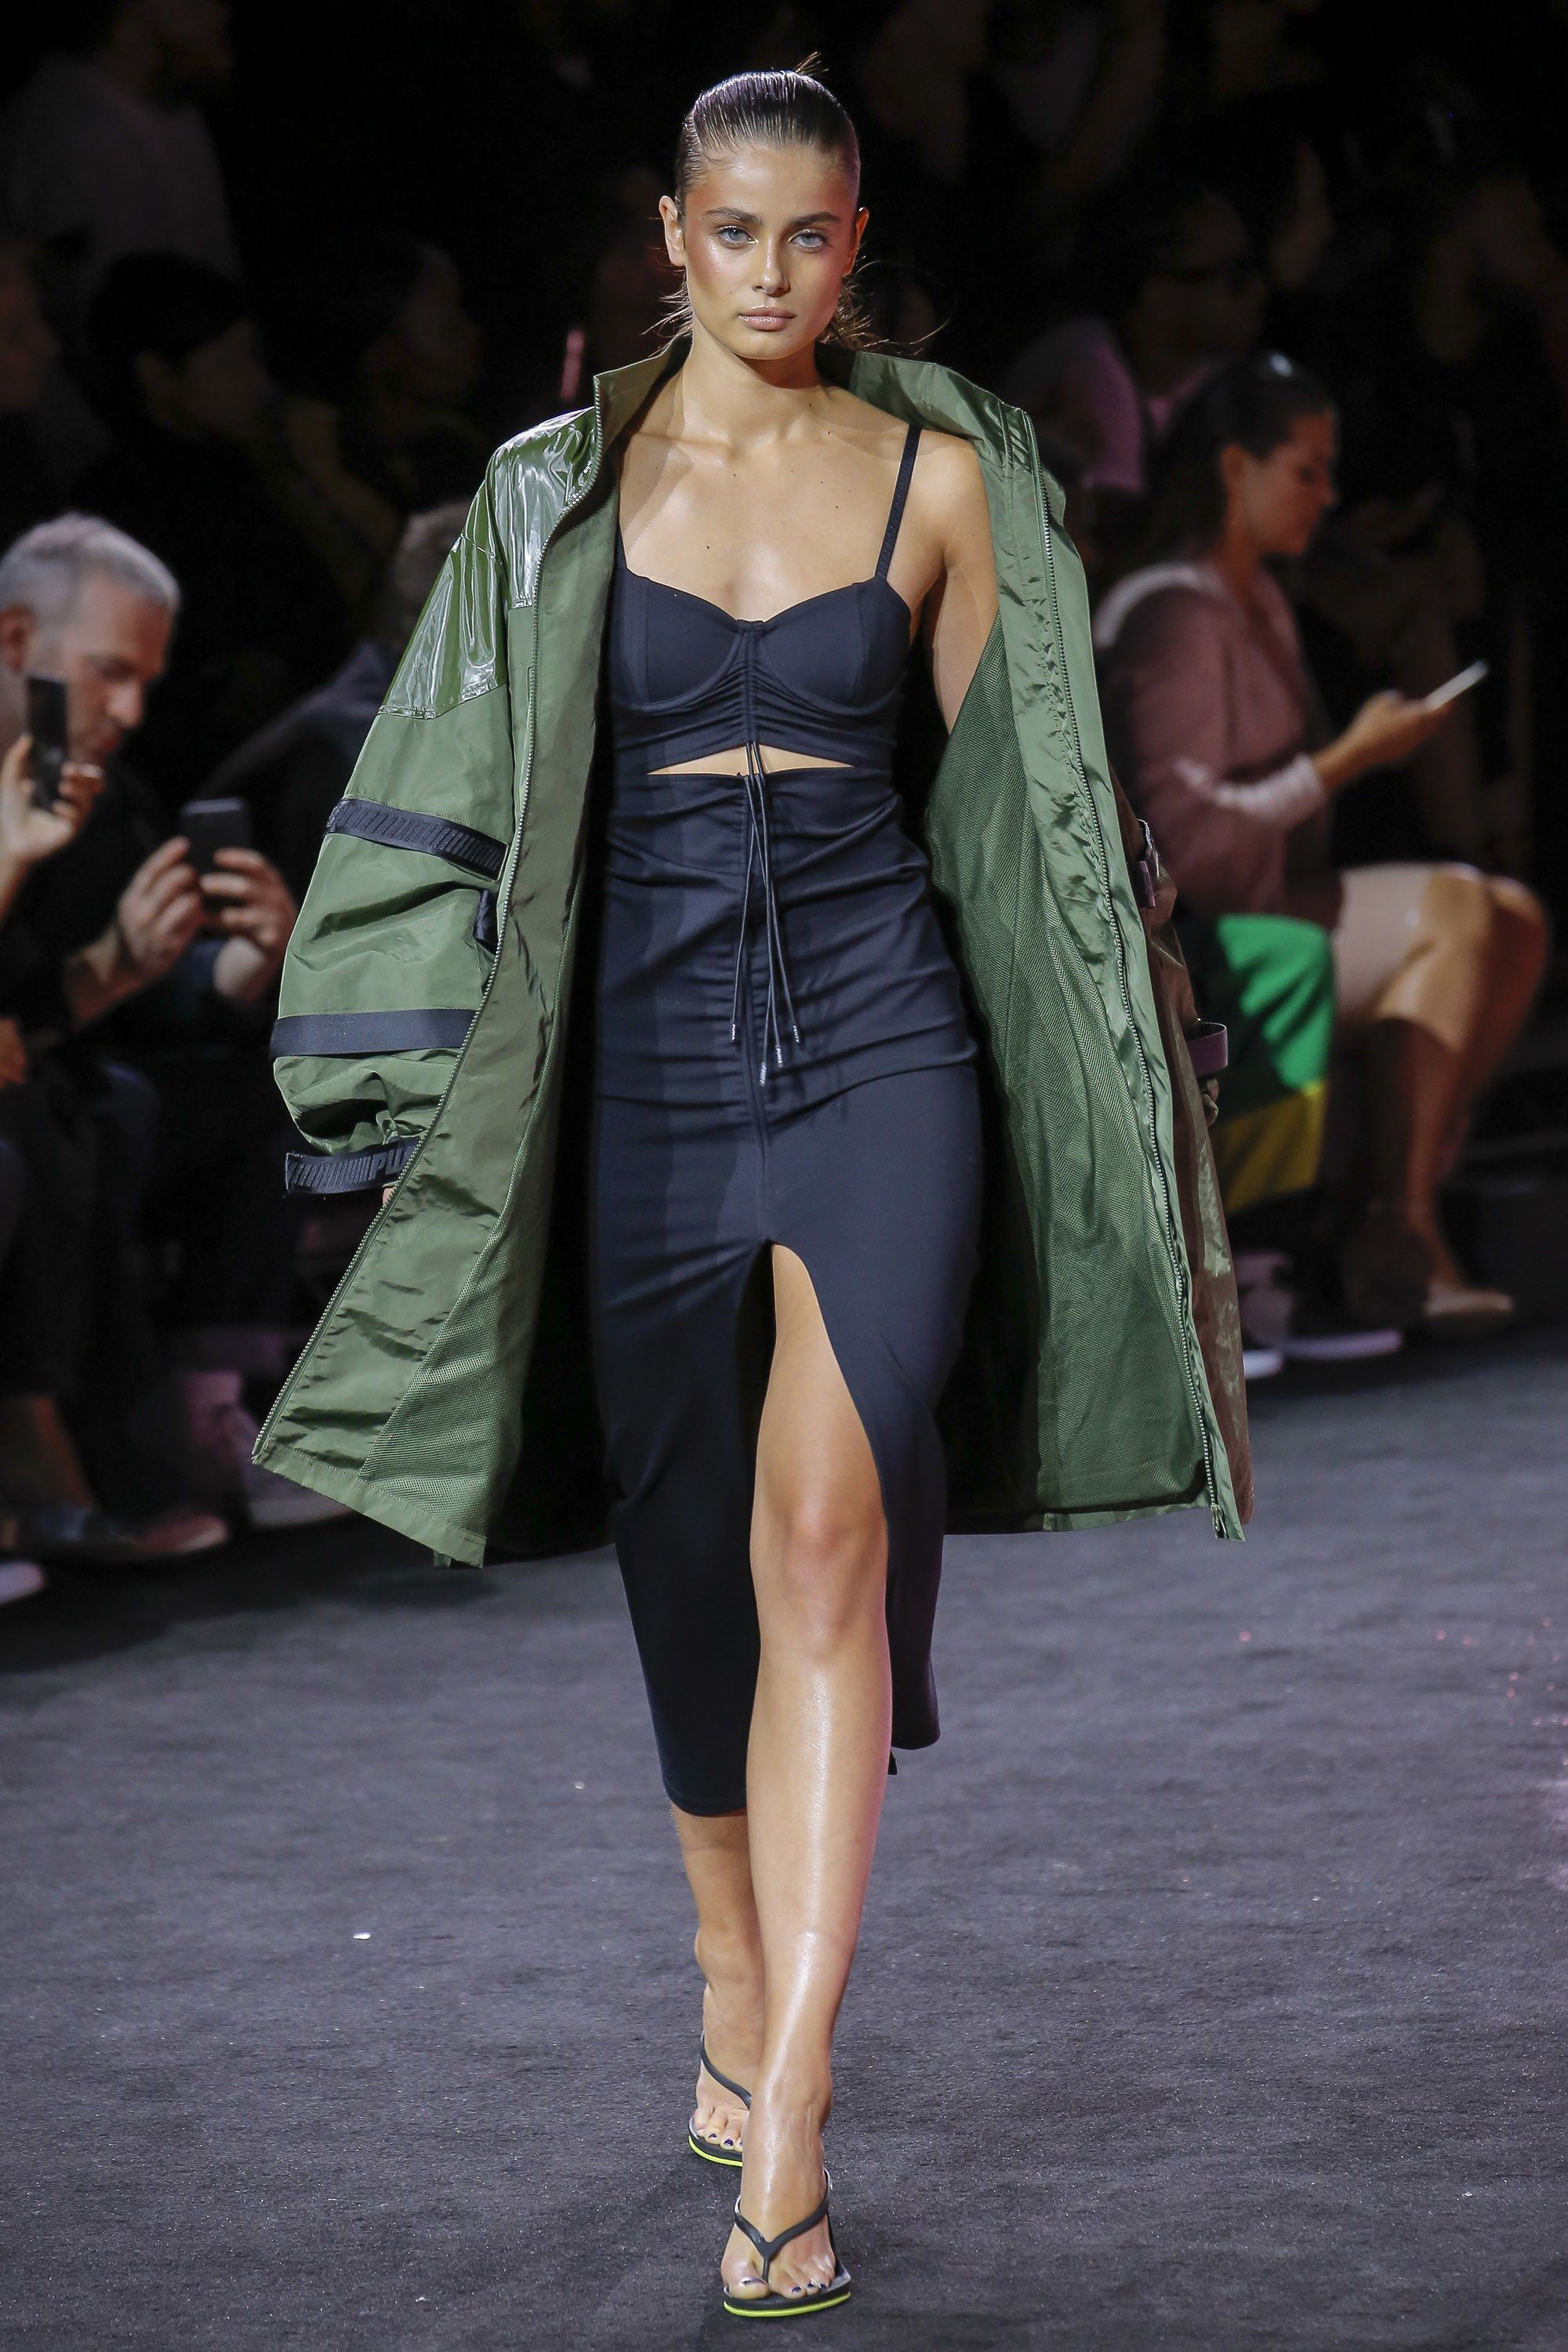 a8fa34c0cc816 See the complete Fenty x Puma Spring 2018 Ready-to-Wear collection.